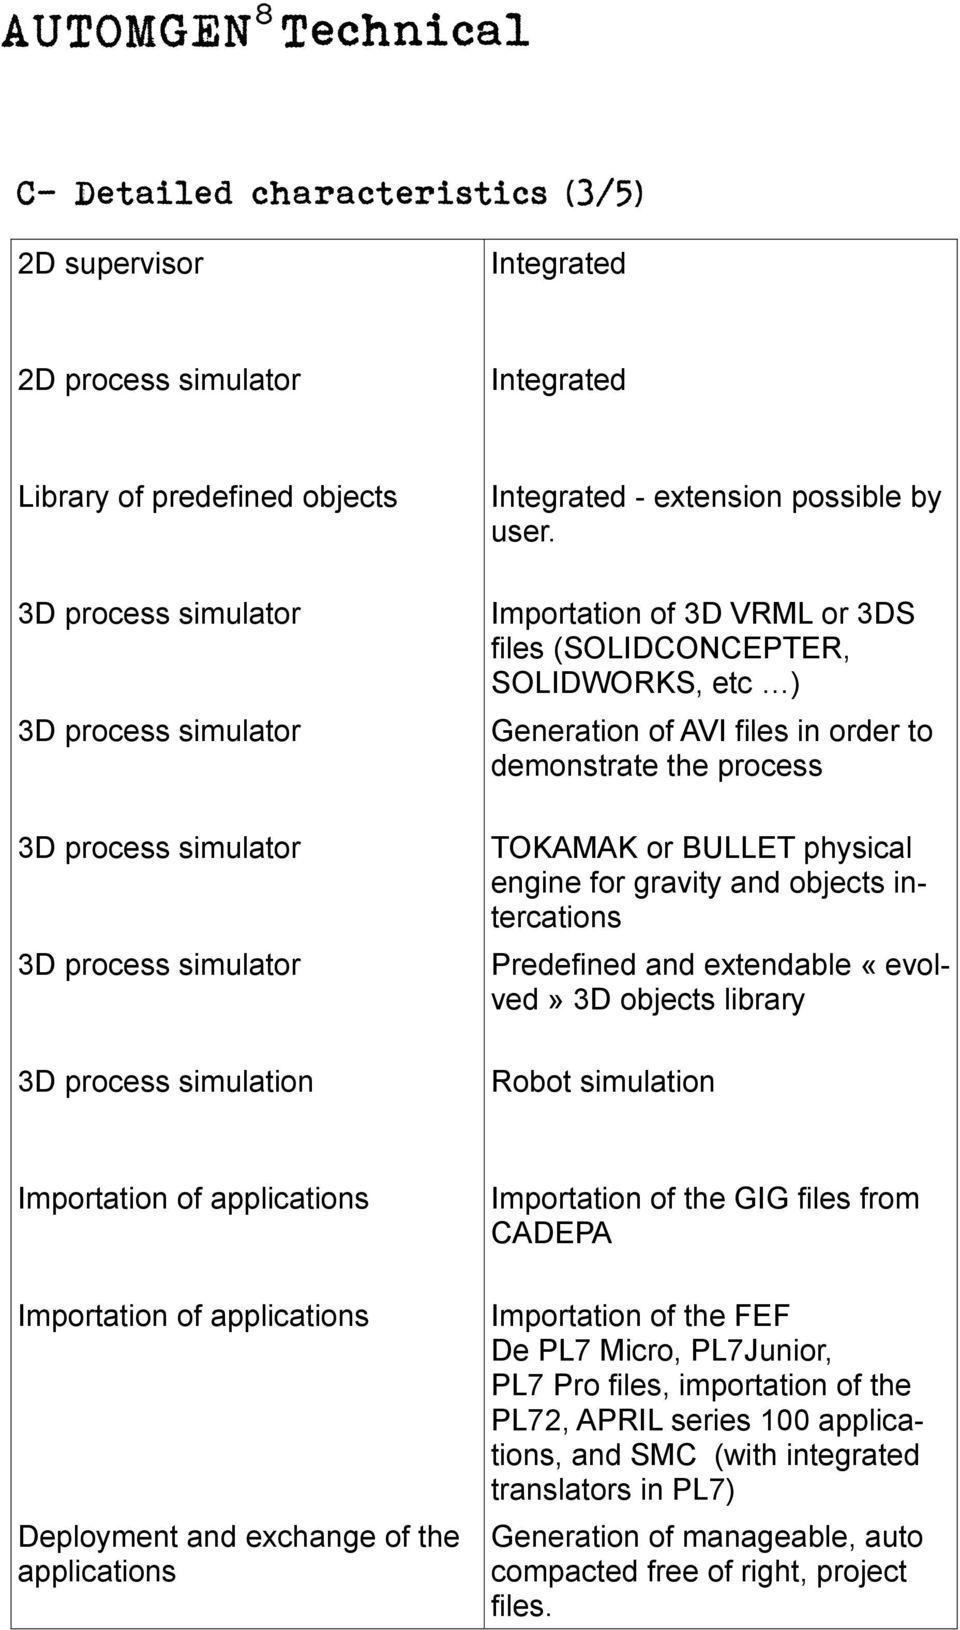 Importation of 3D VRML or 3DS files (SOLIDCONCEPTER, SOLIDWORKS, etc ) Generation of AVI files in order to demonstrate the process TOKAMAK or BULLET physical engine for gravity and objects